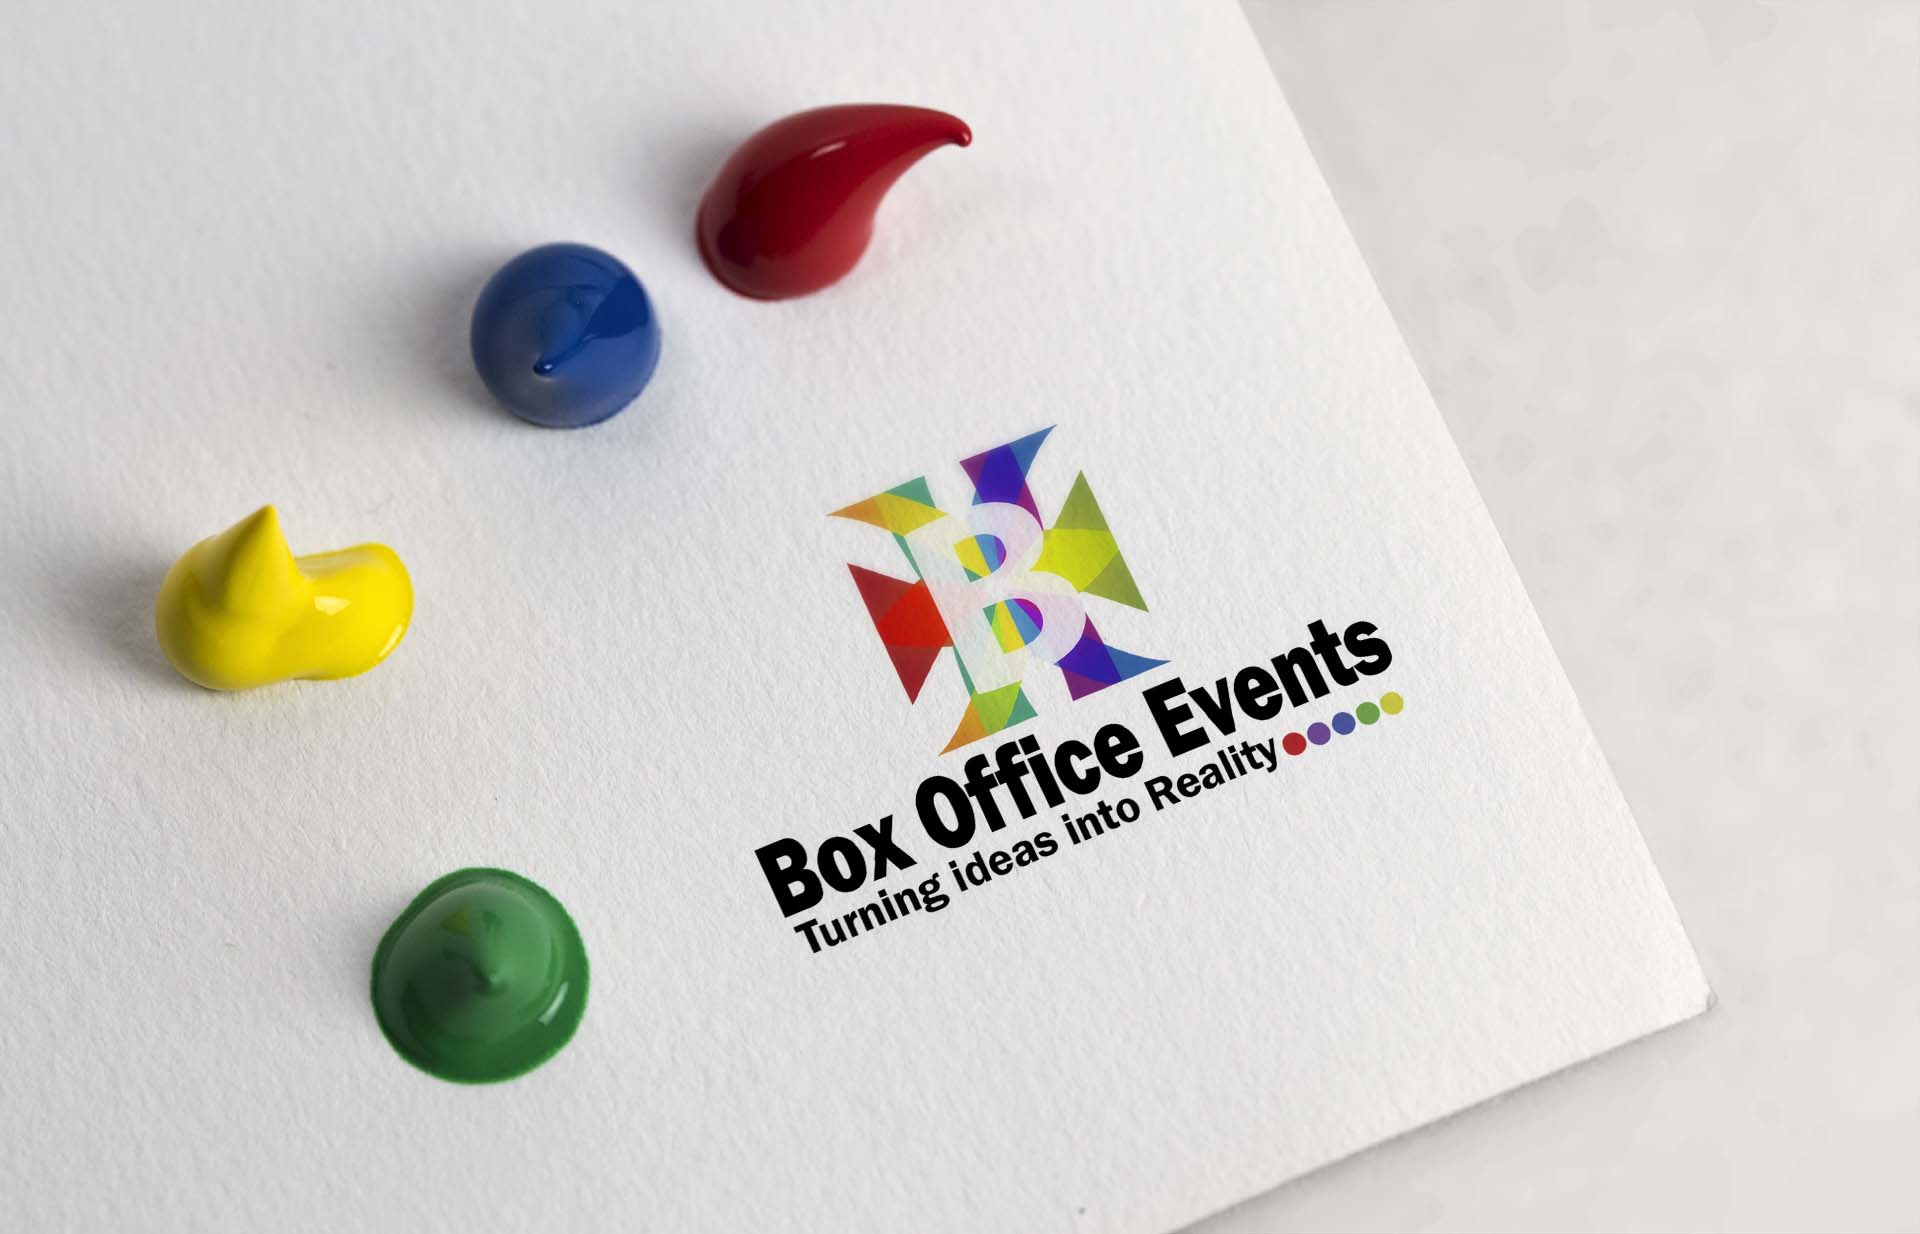 logo design box office